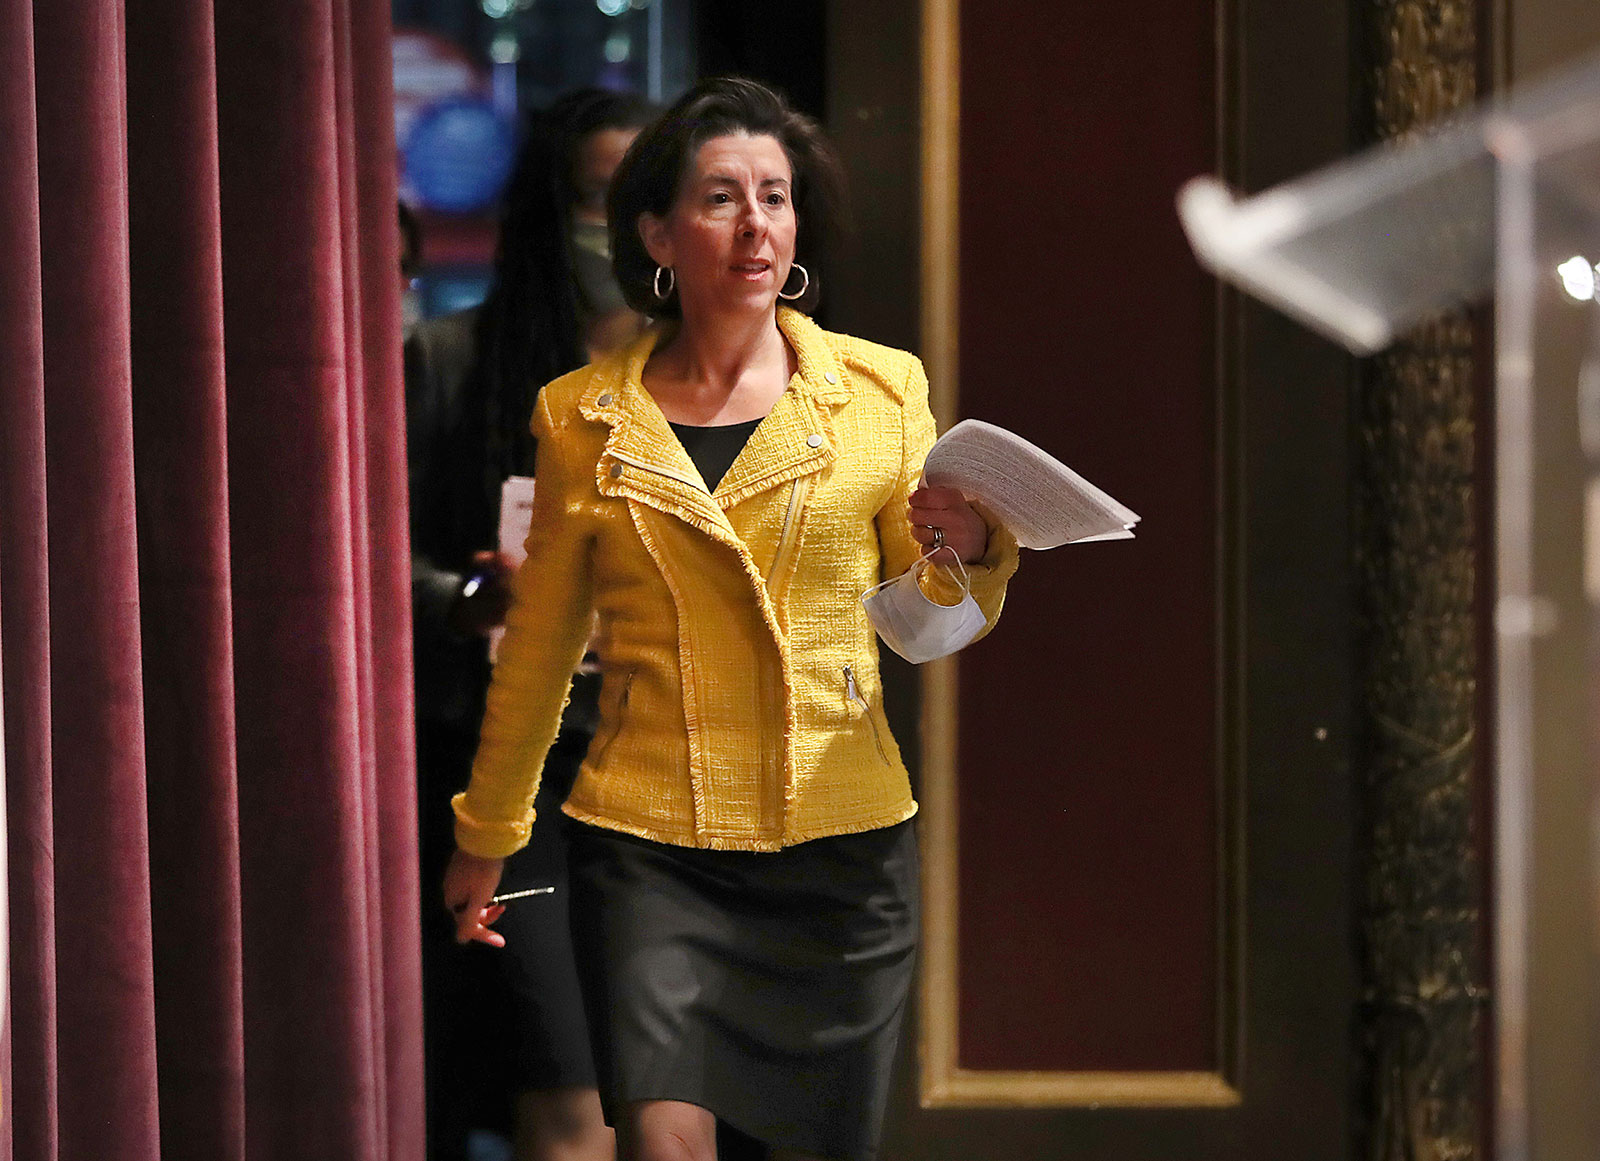 Rhode Island Governor Gina M. Raimondo arrives for a news conference on May 12.